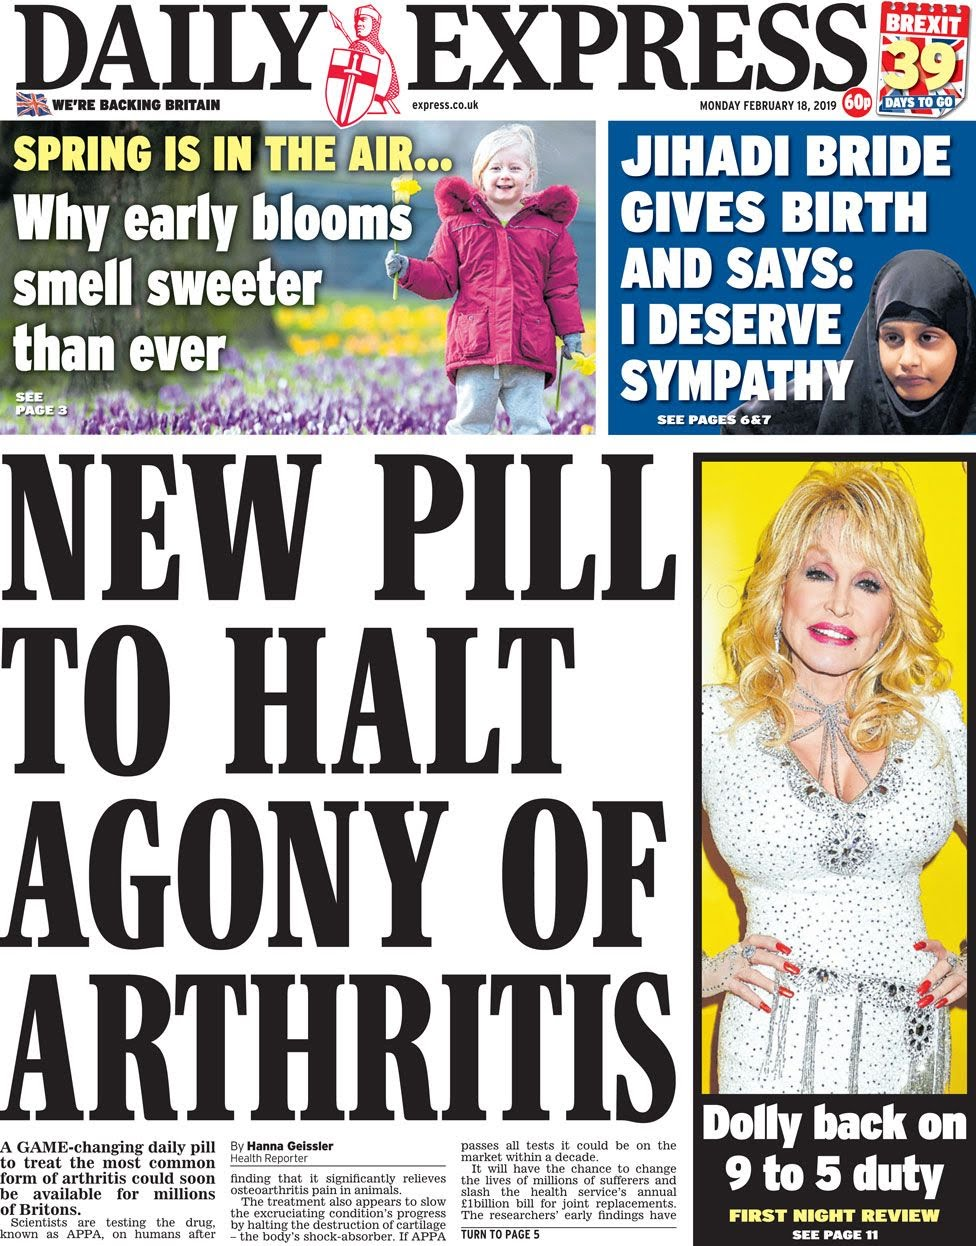 The Daily Express front page on 18 February 2019